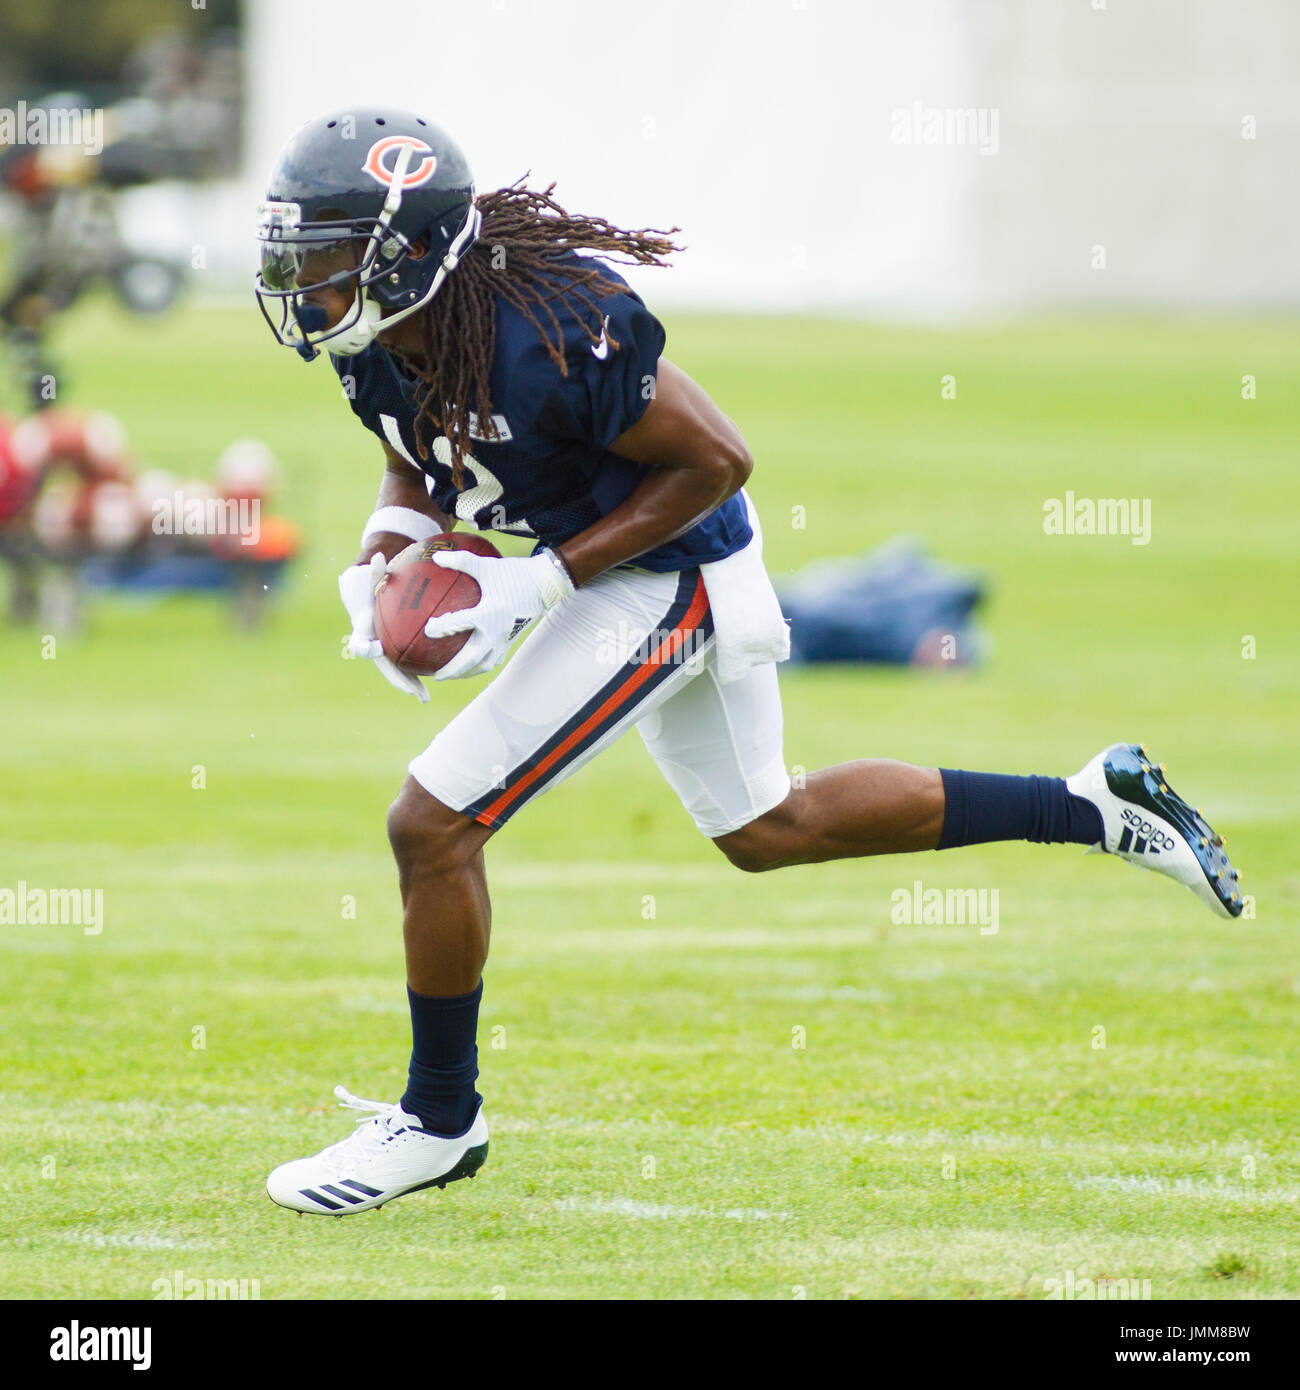 43640bb4e Chicago Bears  12 Marcus Wheaton in action during training camp on the  campus of Olivet Nazarene University